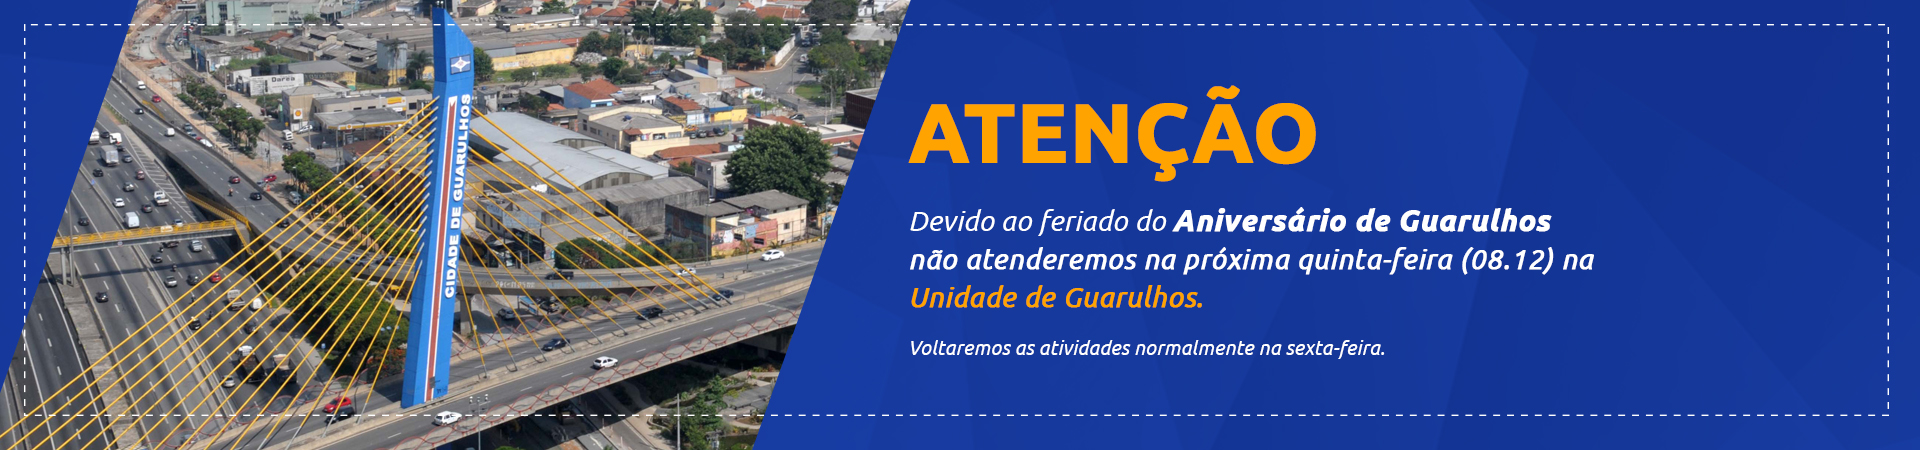 aniver guarulhos